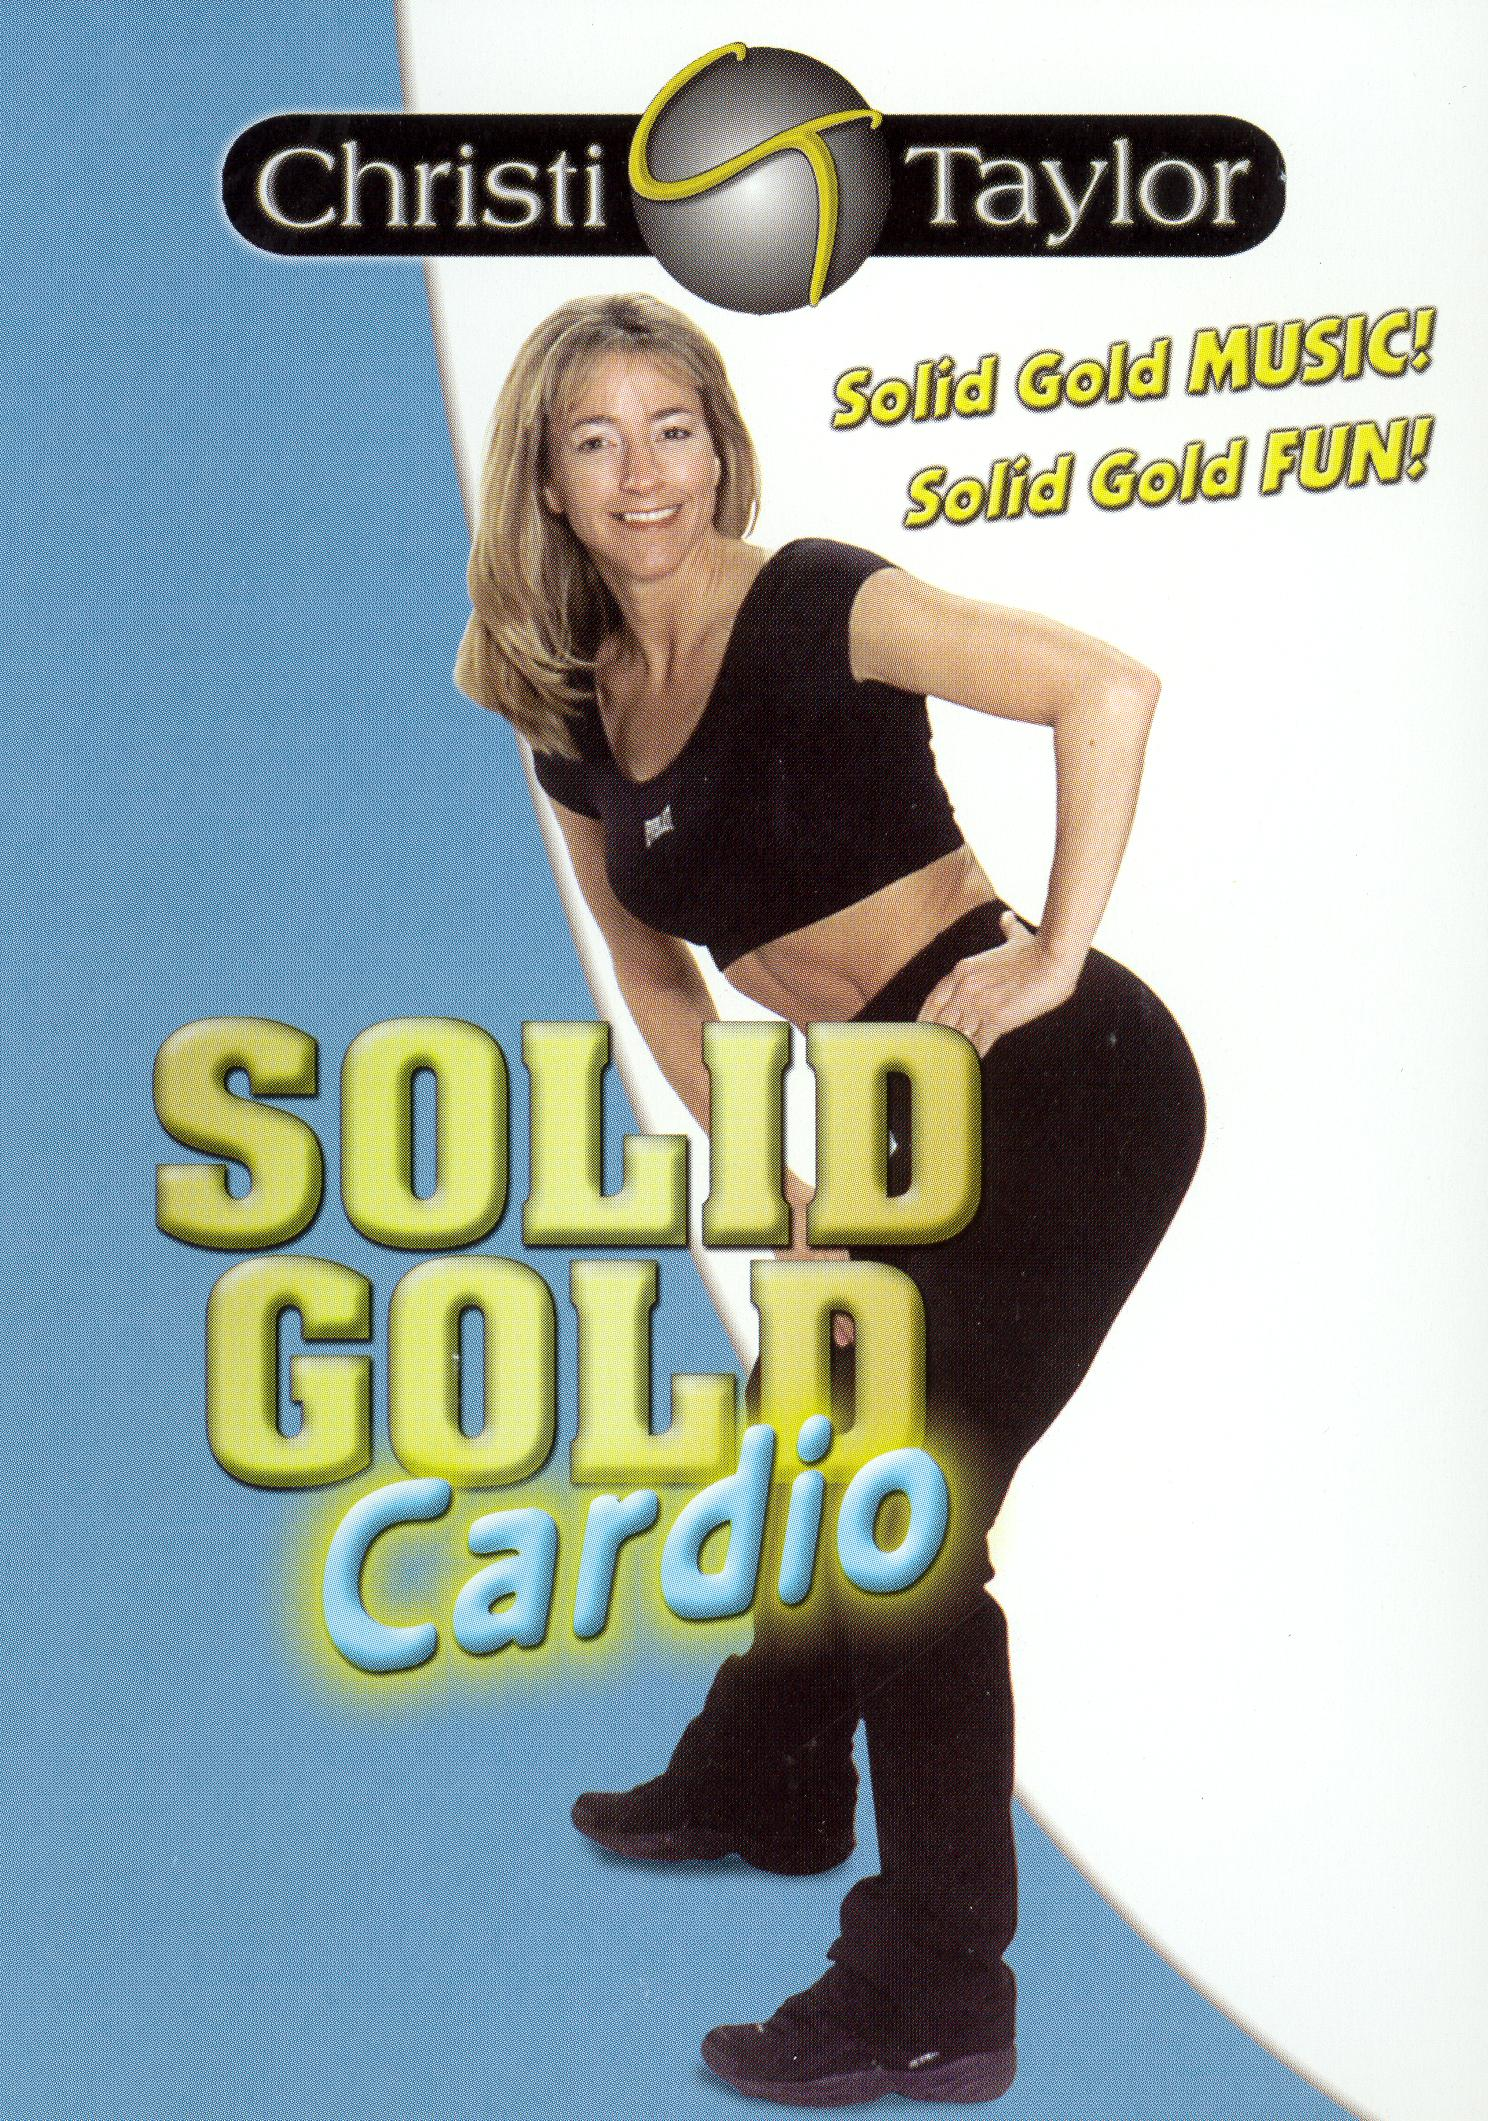 Christi Taylor: Solid Gold Cardio